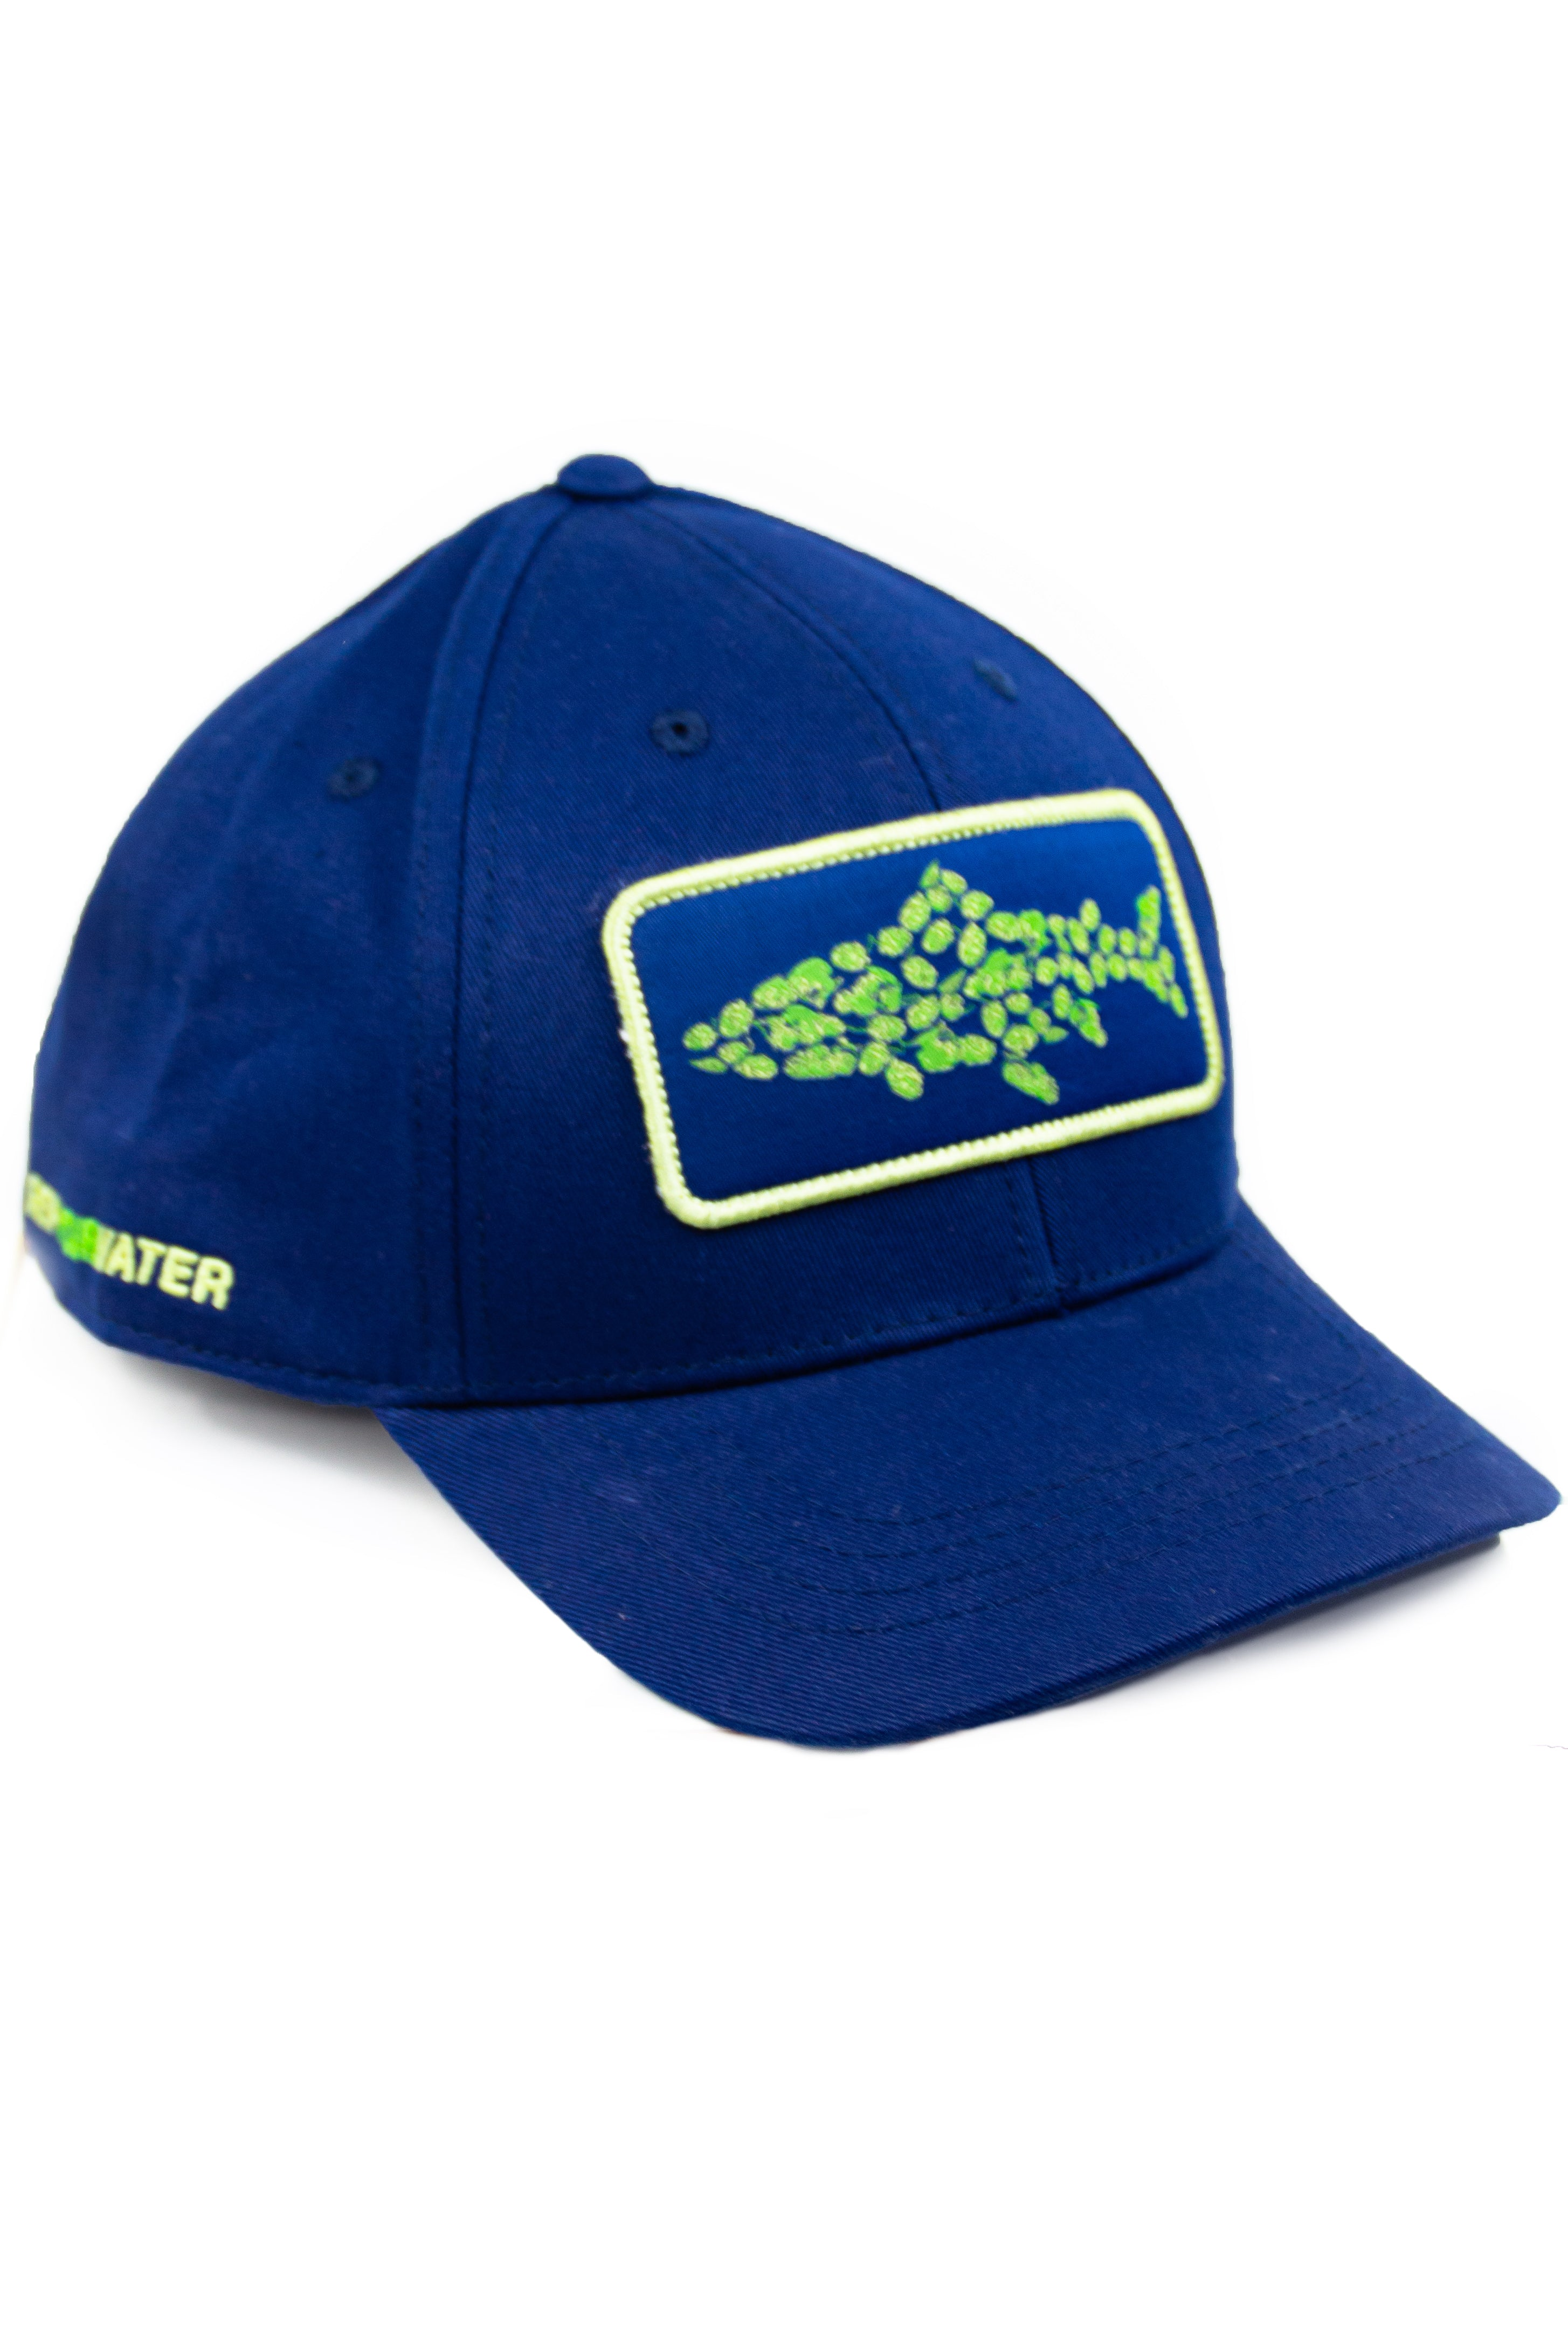 SweetWater Rep Your Water Hat – SweetWater Brewery Outfitters 23d62d2a9bdf